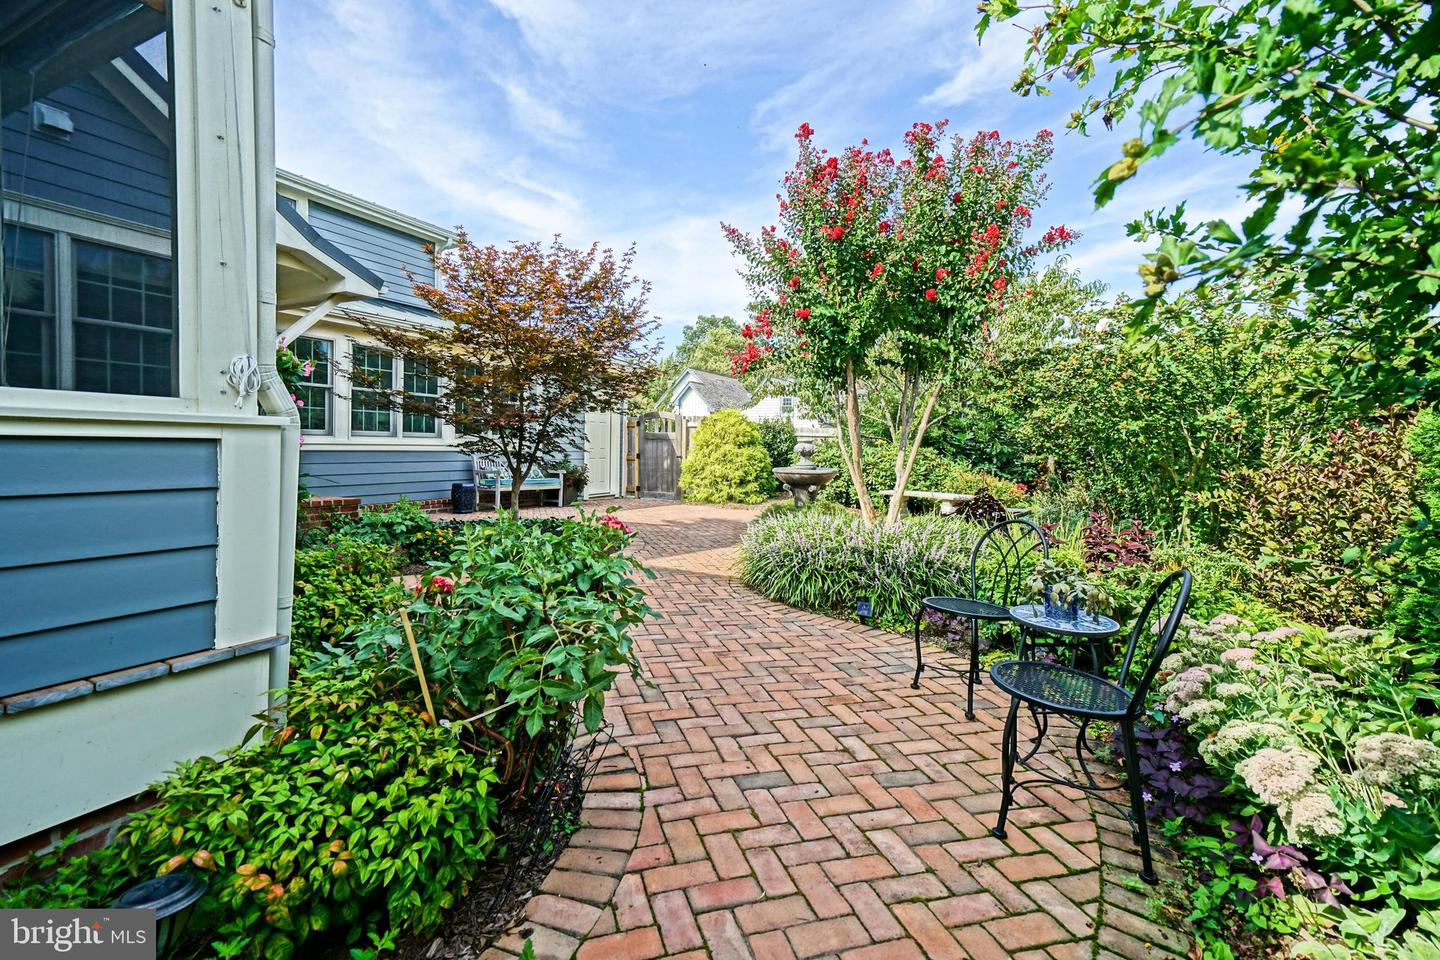 DESU147556-302019821182-2019-11-23-15-34-58 36 Shipcarpenter Sq | Lewes, DE Real Estate For Sale | MLS# Desu147556  - Lee Ann Group